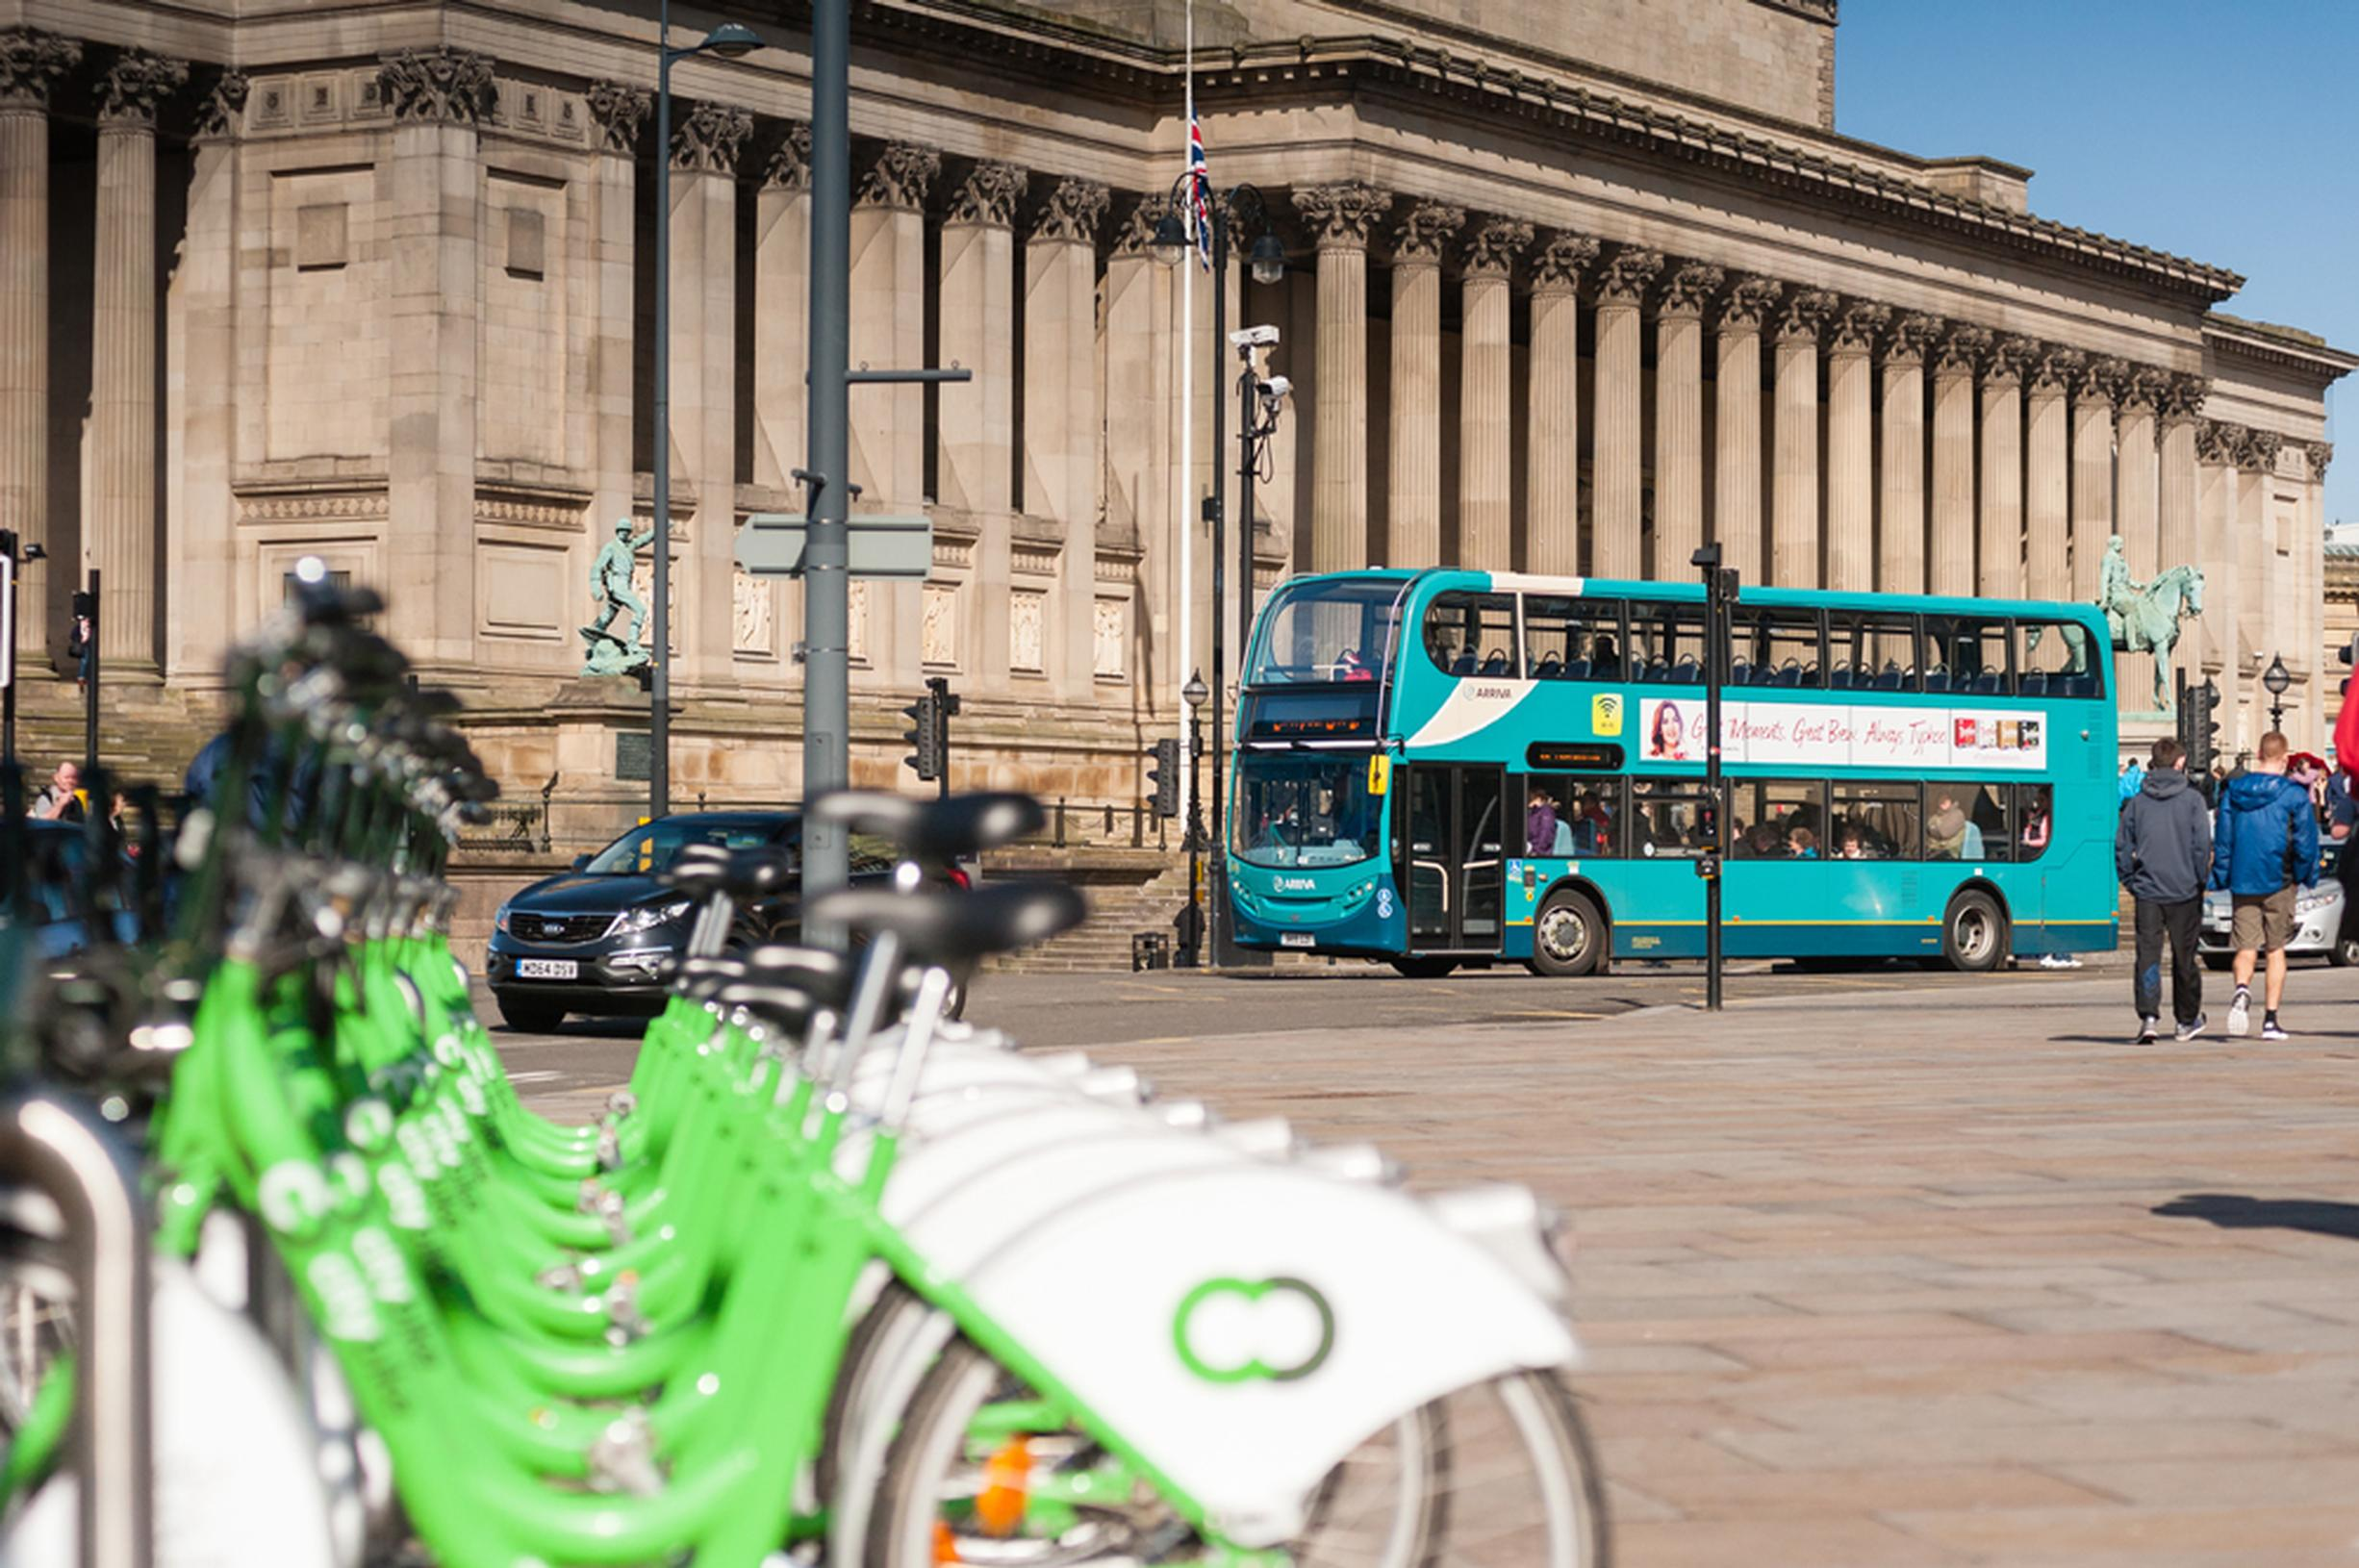 LCR is integrating modes to provide easy local journeys. Image courtesy of Merseytravel